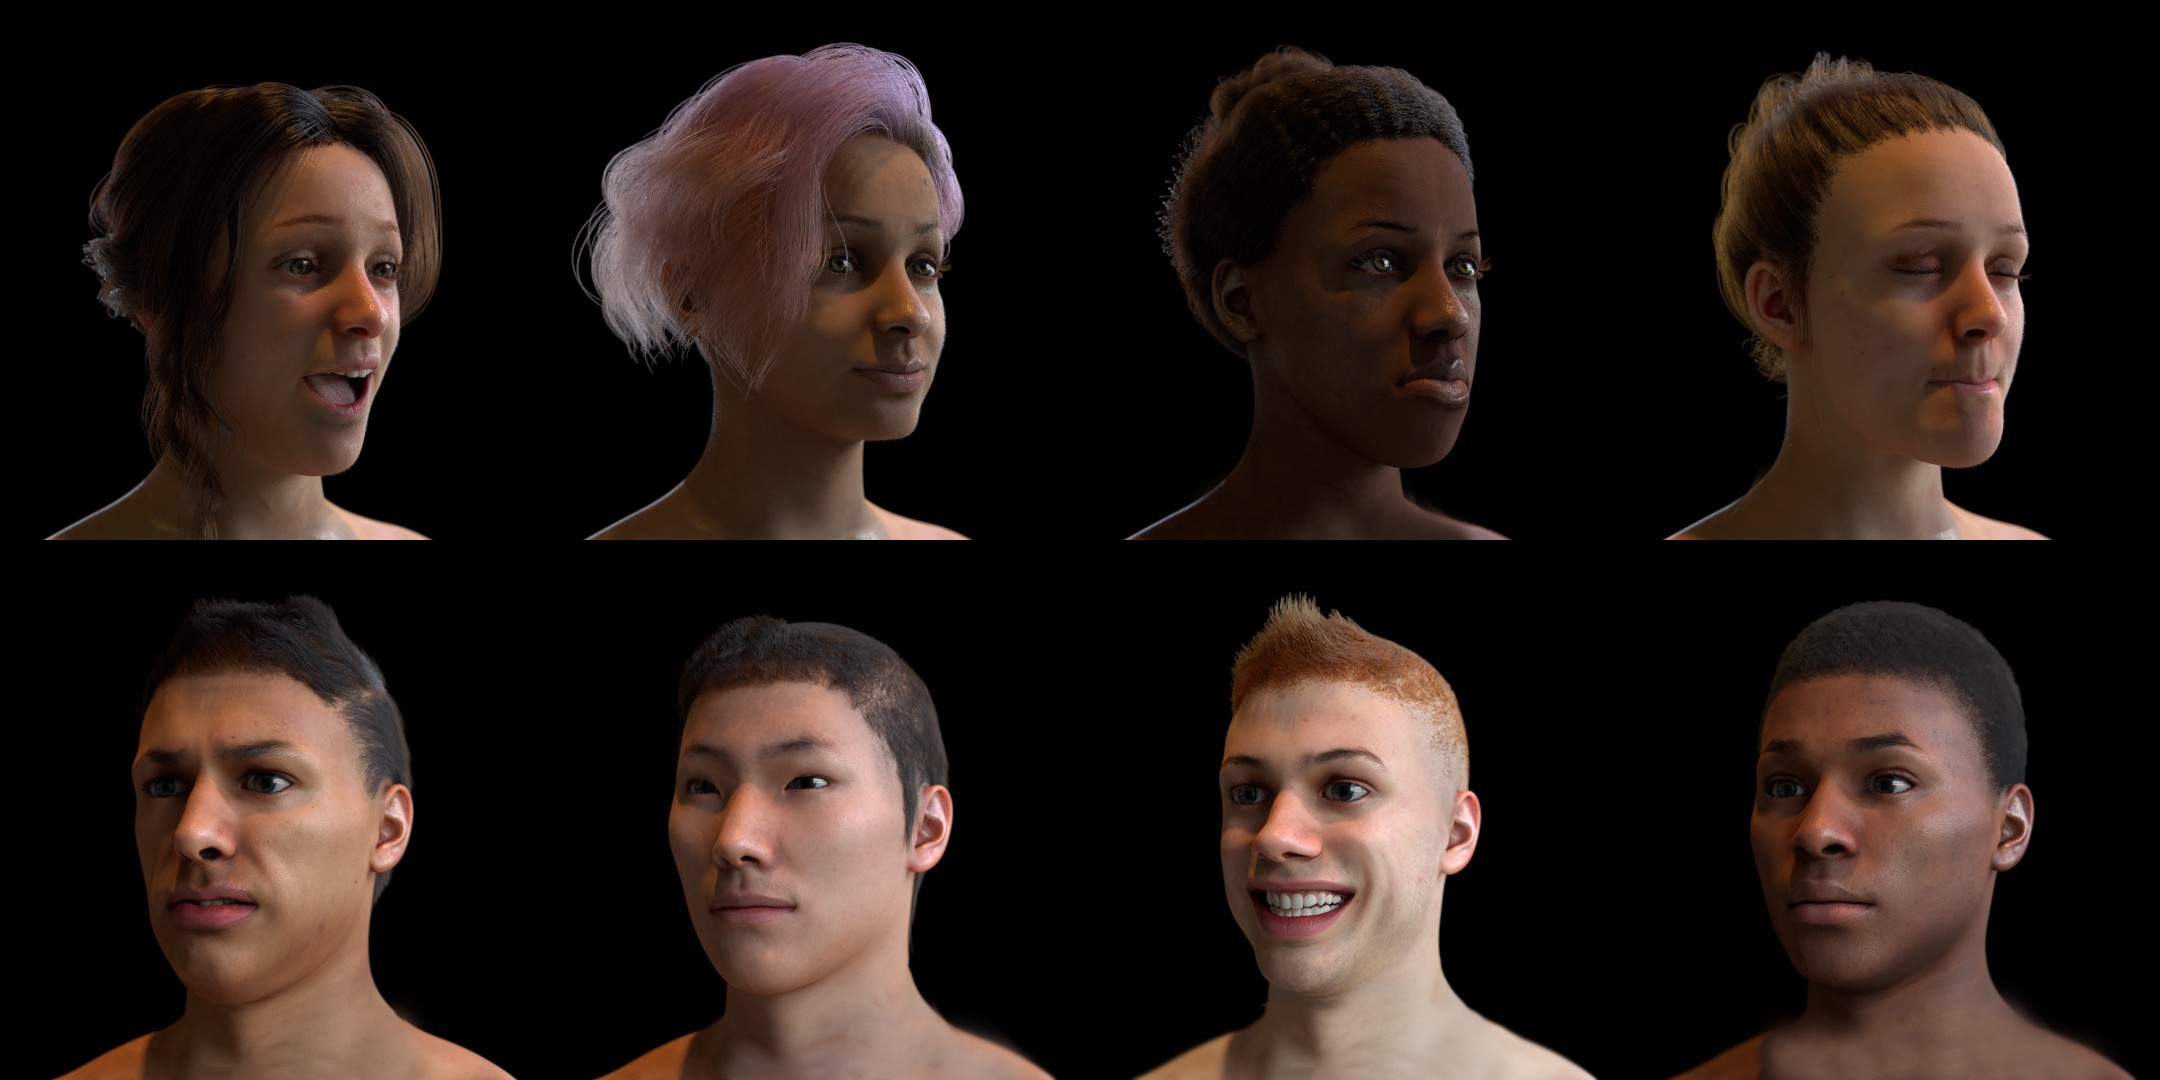 Datagen simulated faces